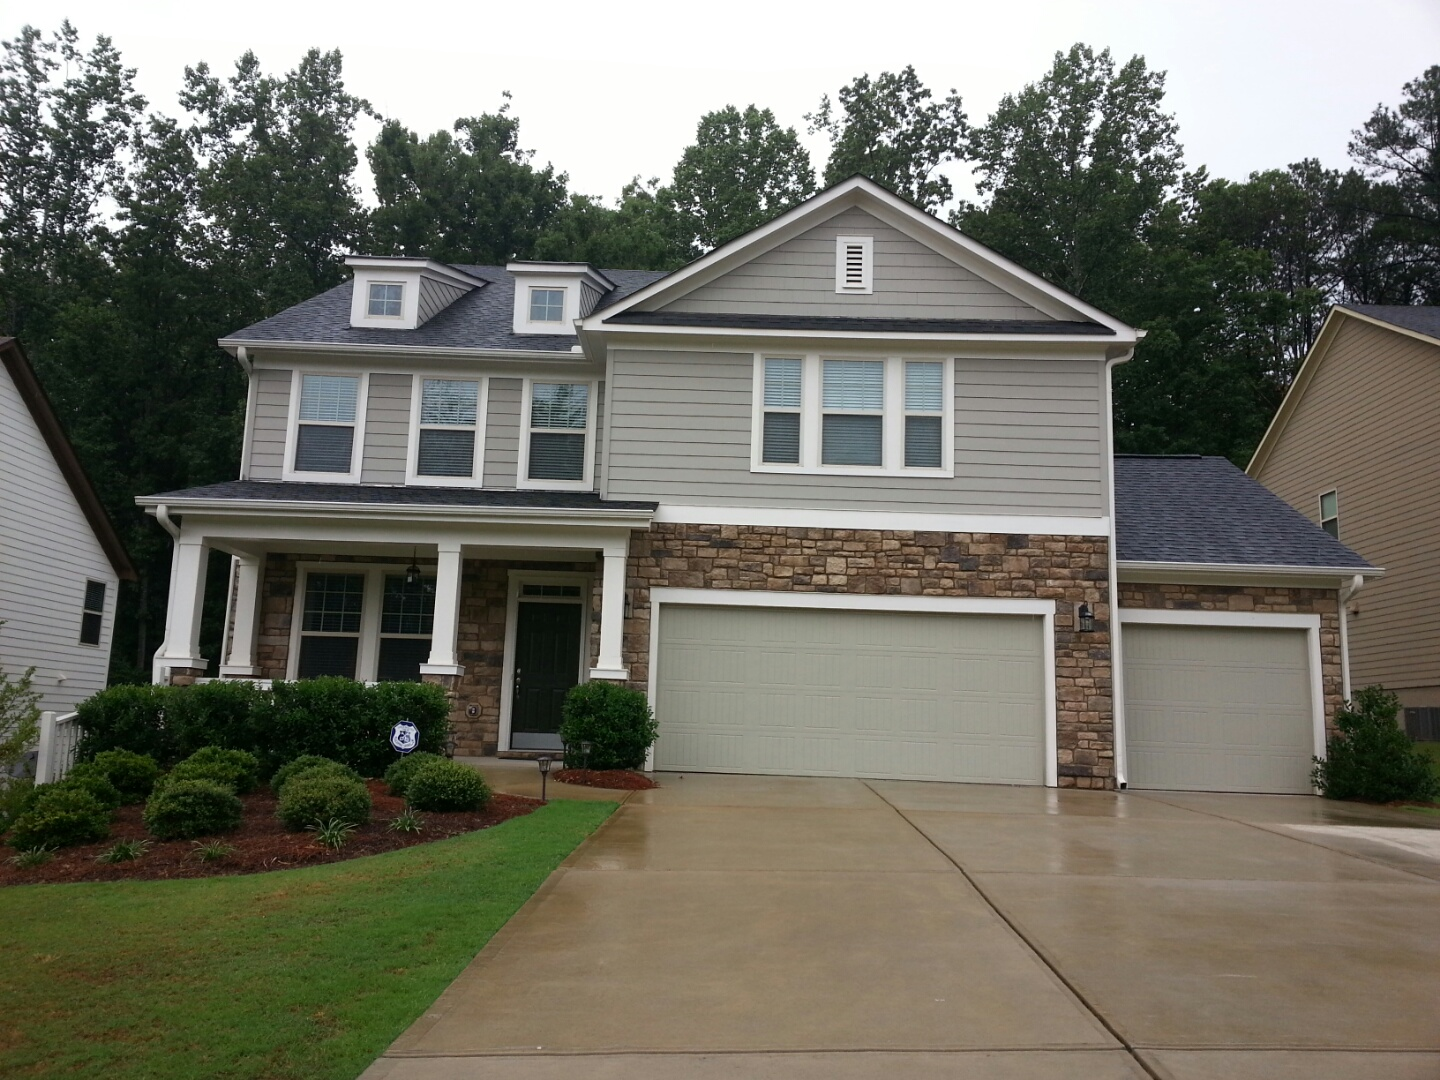 5BR/4BA/3Garage House for Rent in North Gwinnett HS